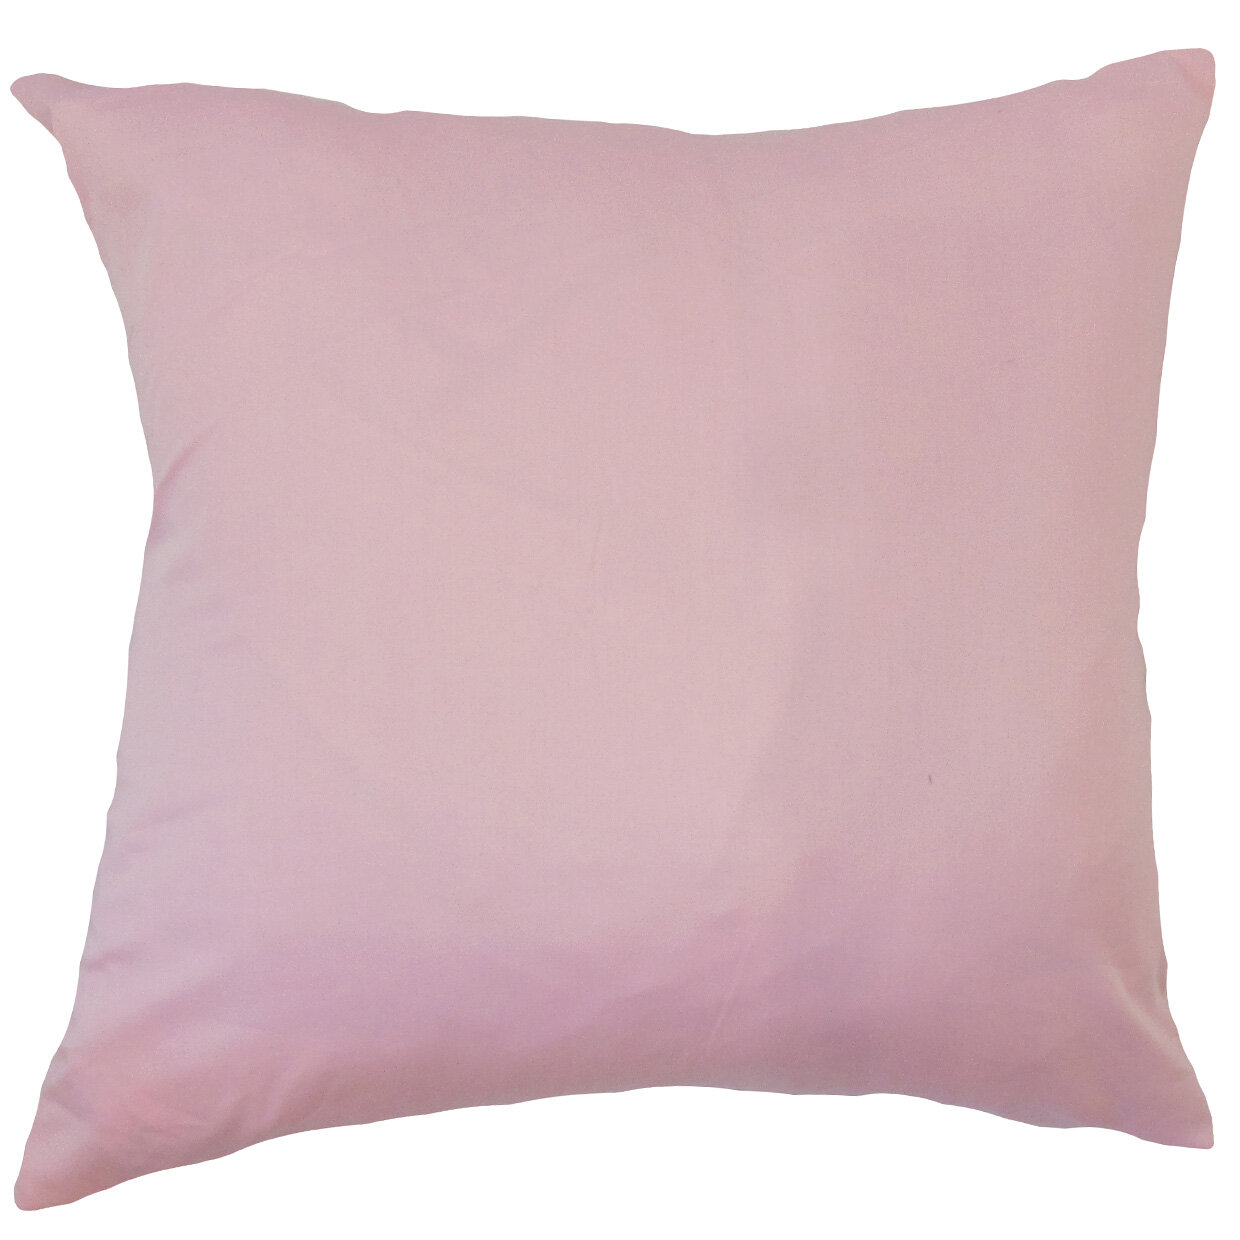 Best Throw Pillow Filling : Harriet Bee Avonmouth Solid Down Filled 100% Cotton Throw Pillow Wayfair